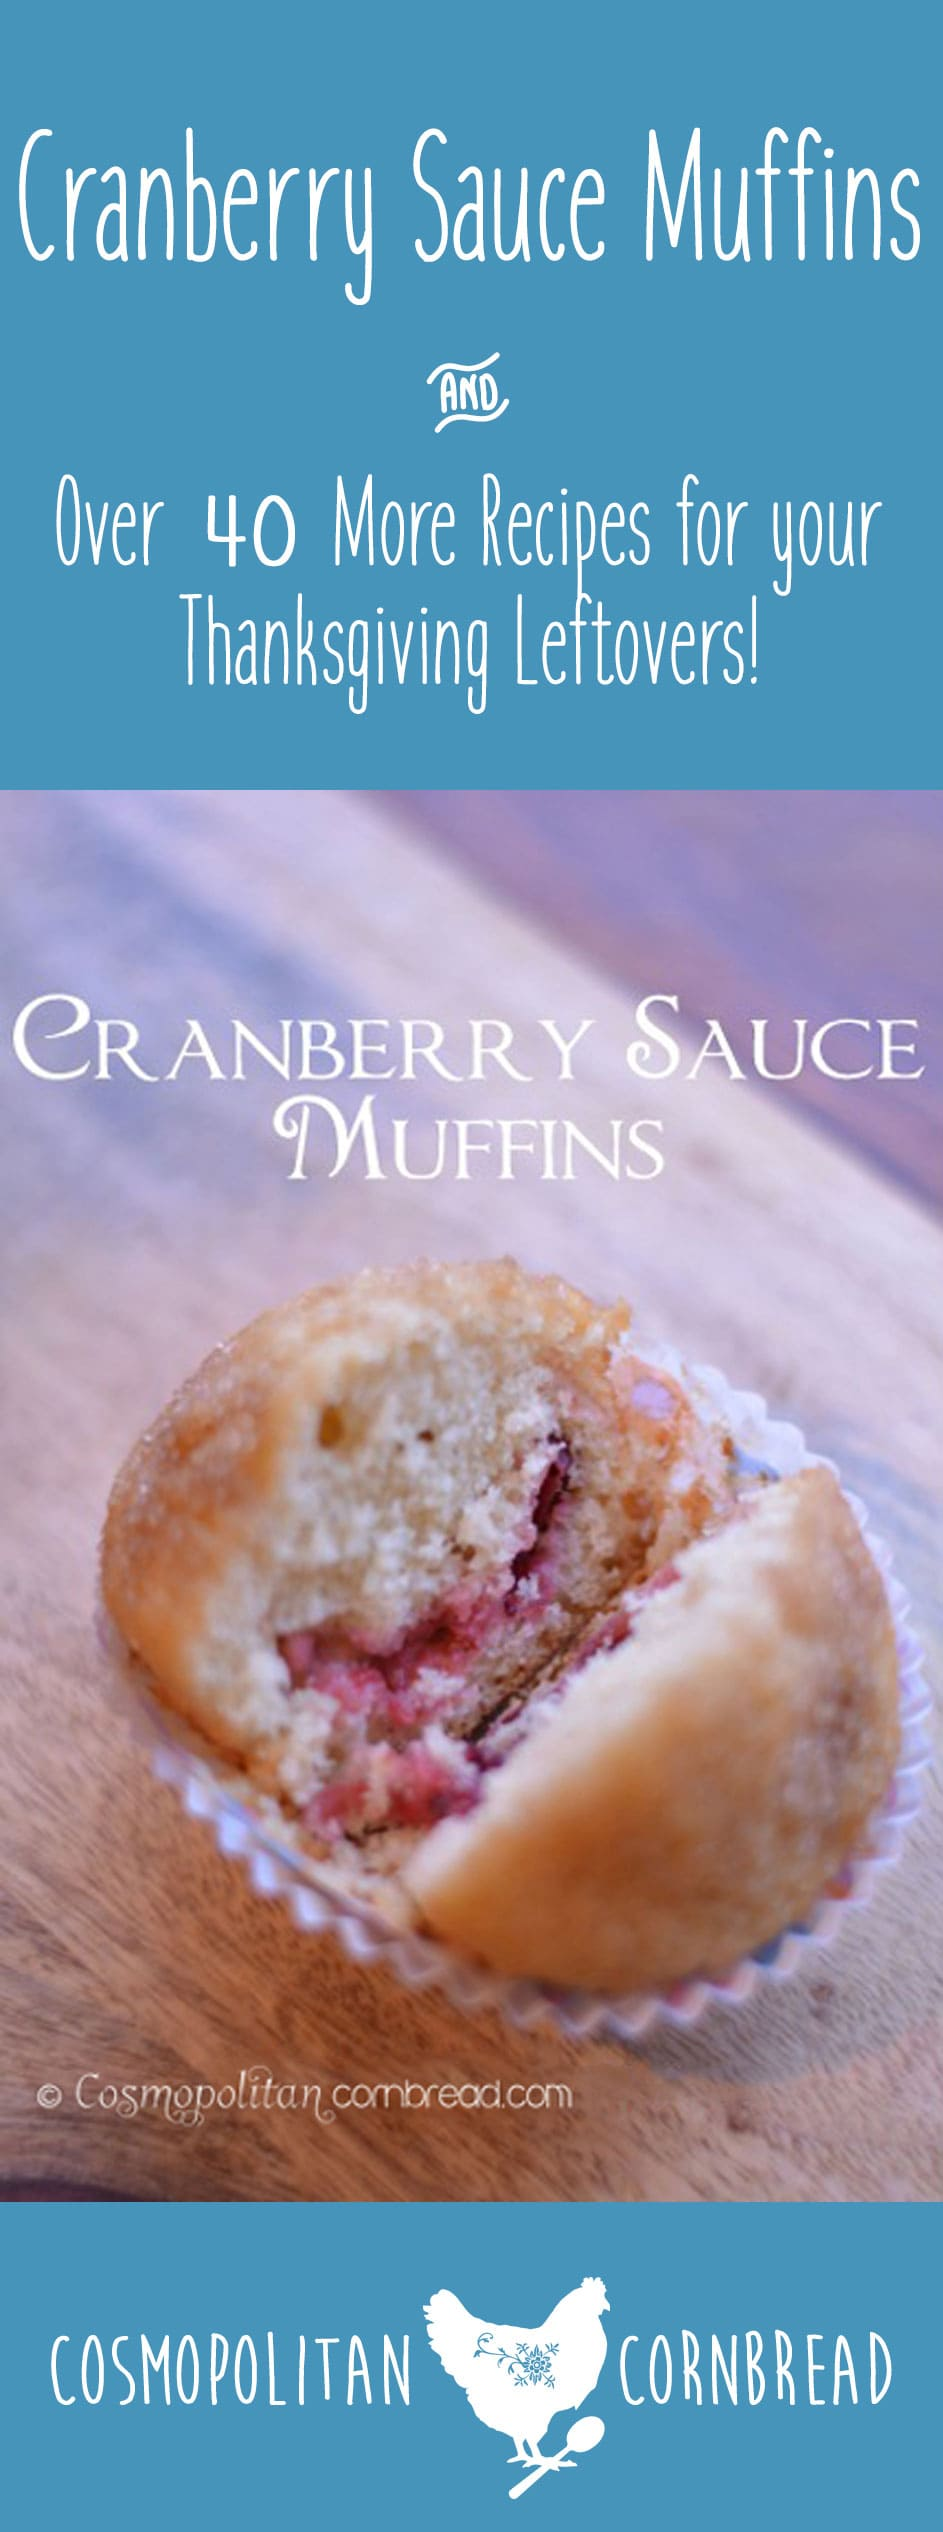 Cranberry Sauce Muffins and over 40 more recipes for your Thanksgiving Leftovers! | Cosmopolitan Cornbread